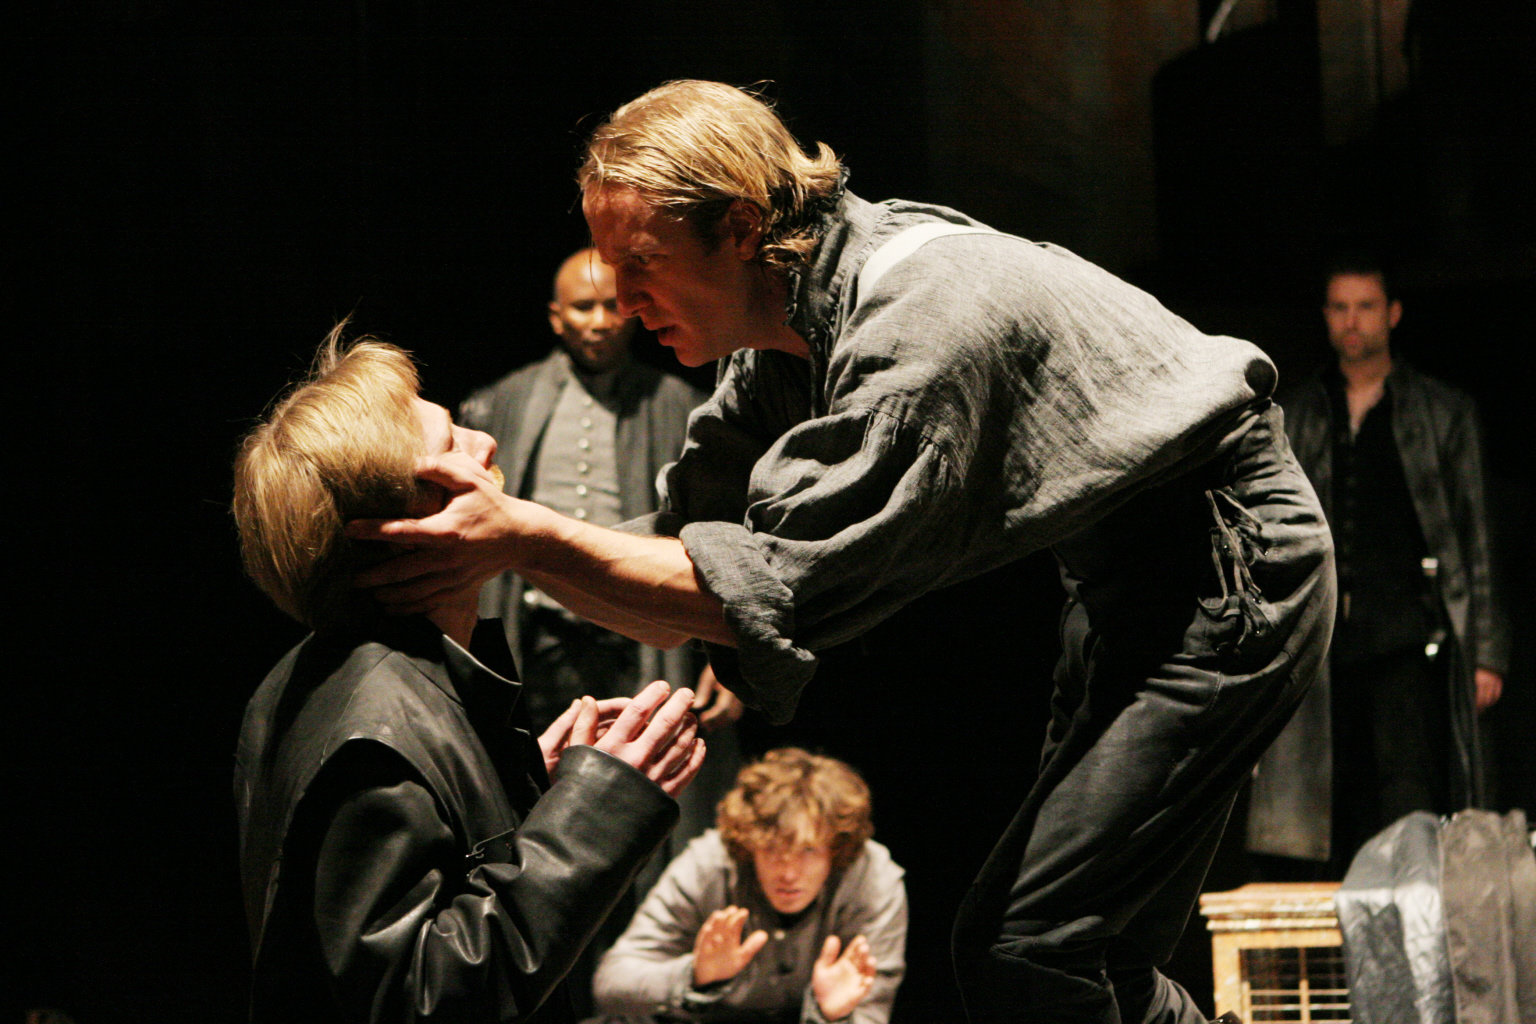 Henry holds Scroop's head with both hands as he questions him in the 2007 production of Henry V